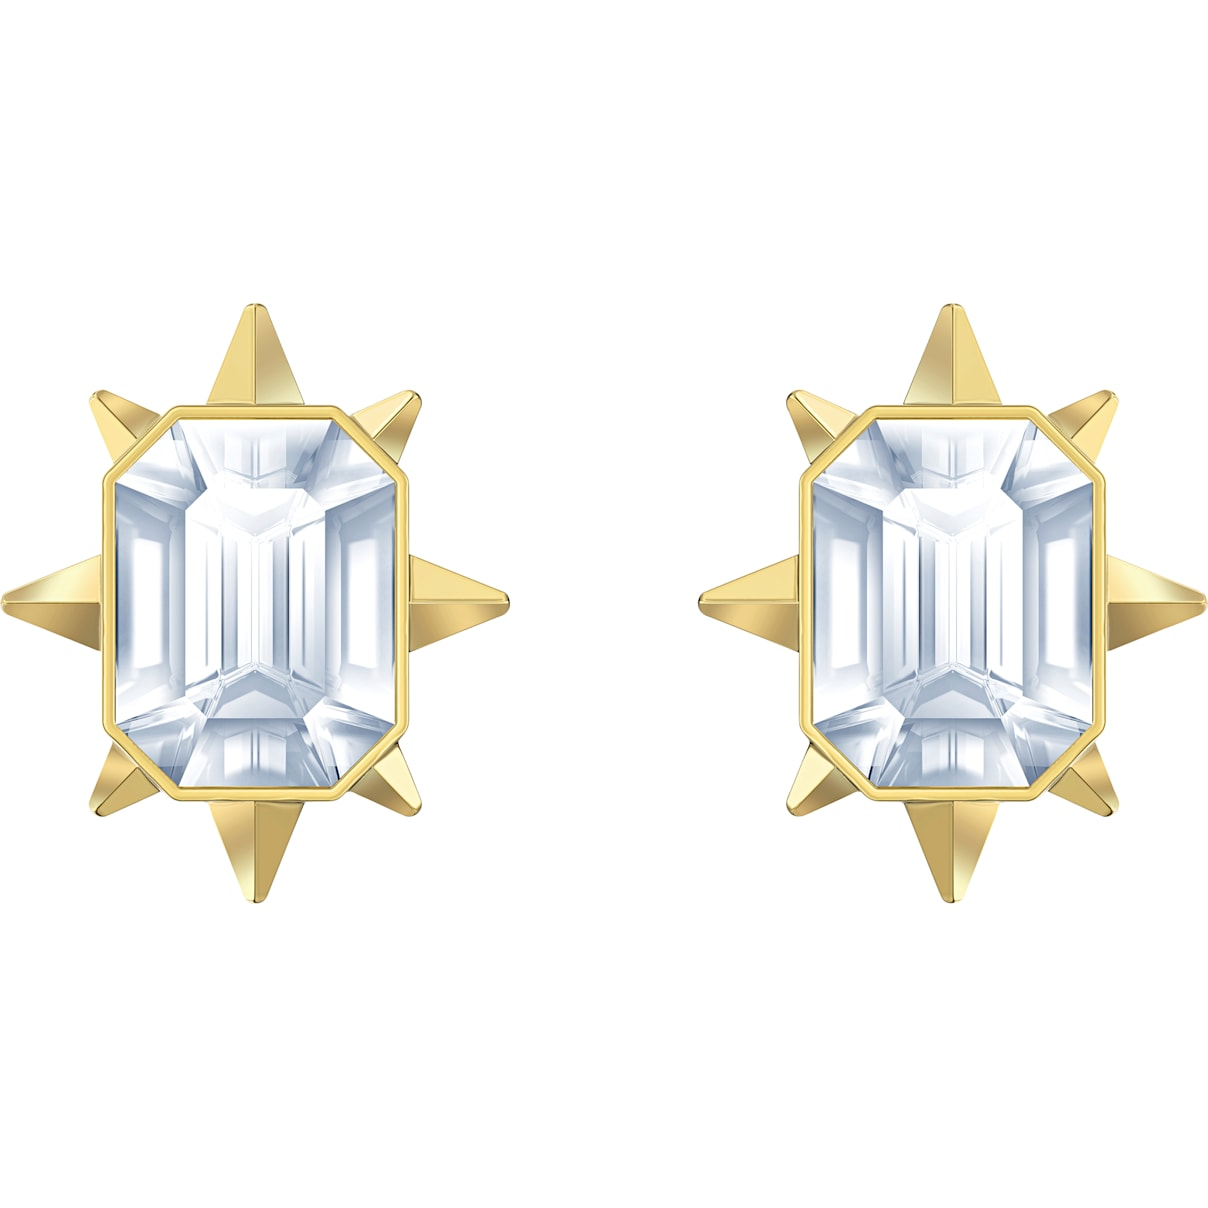 Swarovski Tarot Magic Stud Pierced Earrings, White, Gold-tone plated